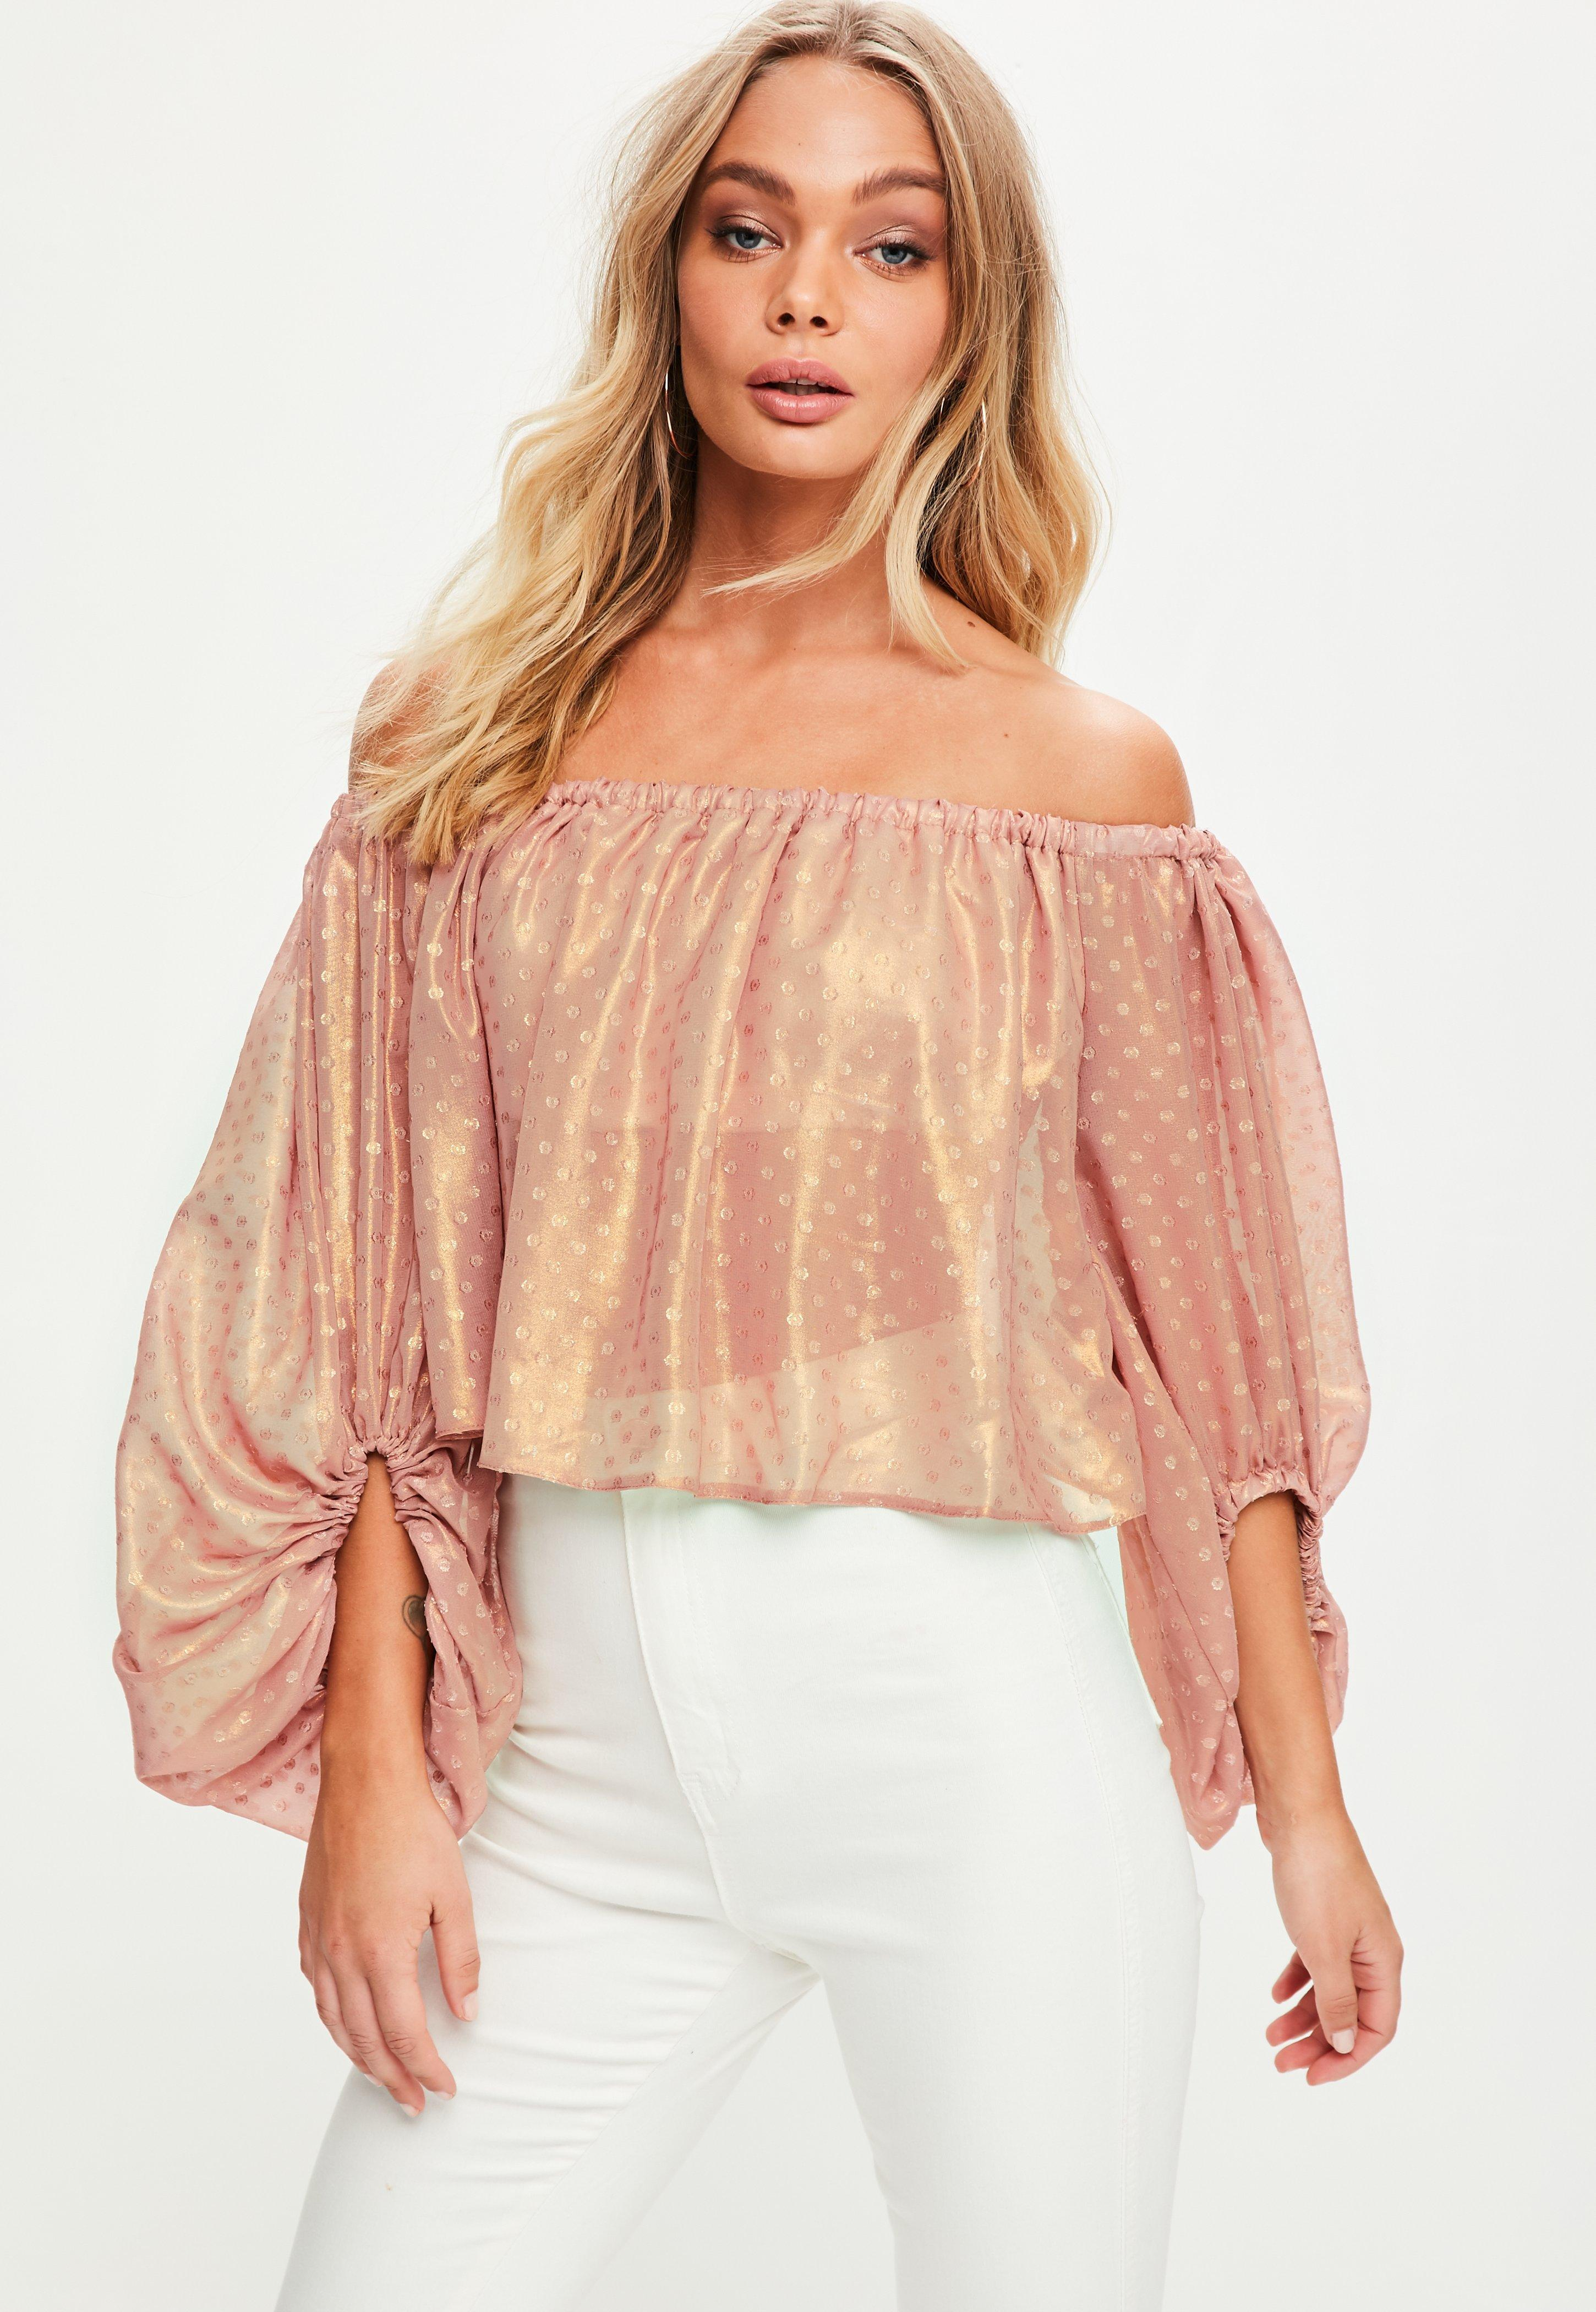 76249c98f0b6f6 Lyst - Missguided Rose Gold Dobby Mesh Bardot Crop Top in Pink